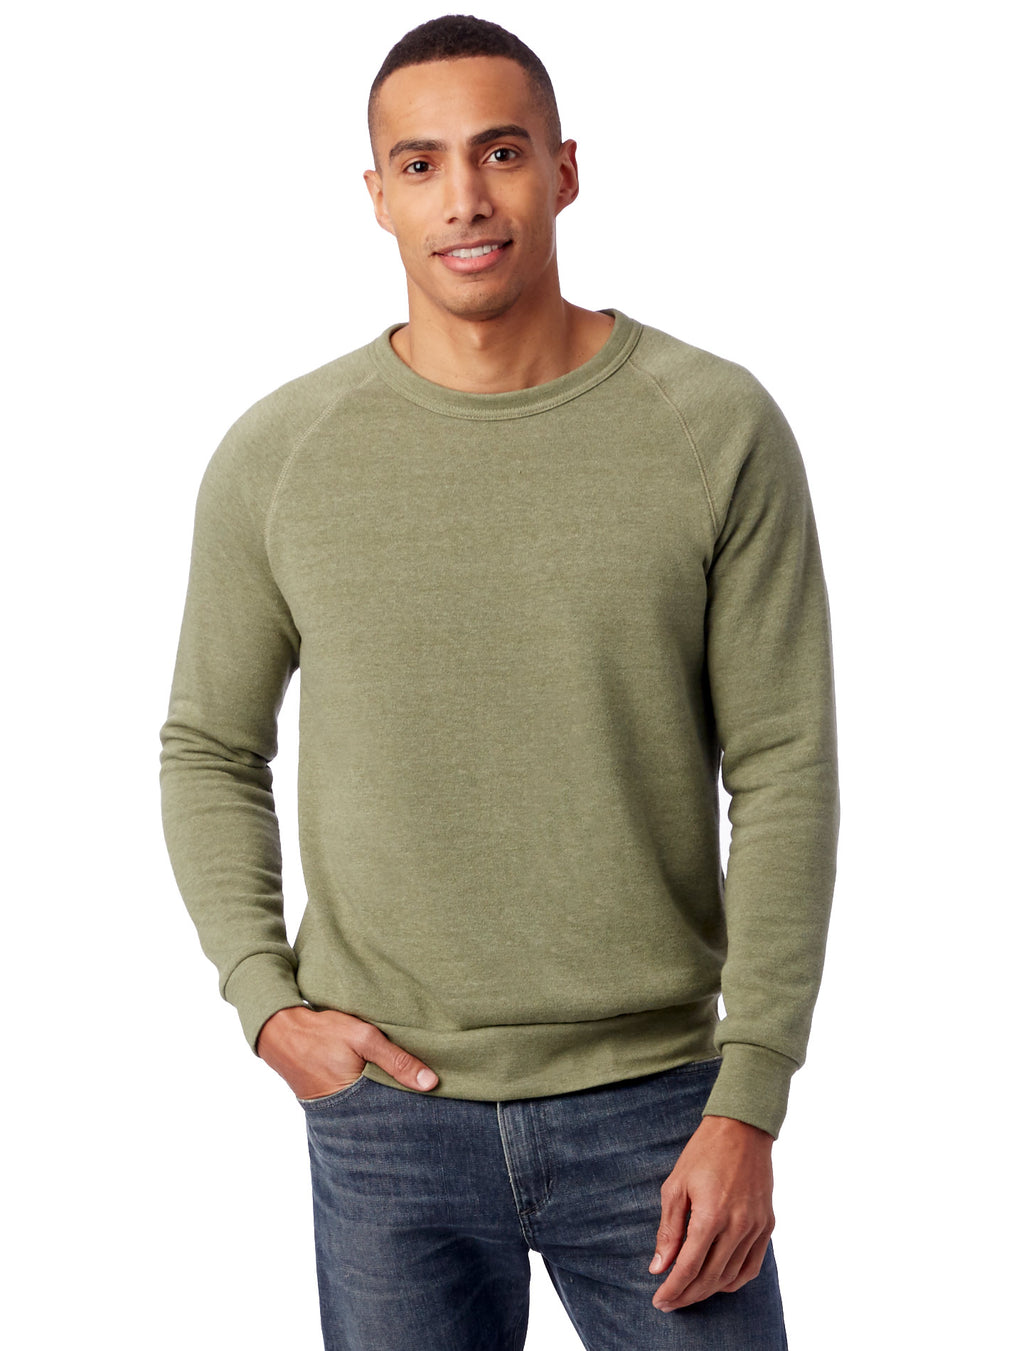 Alternative Apparel Champ Eco-Fleece Sweatshirt- Army Green